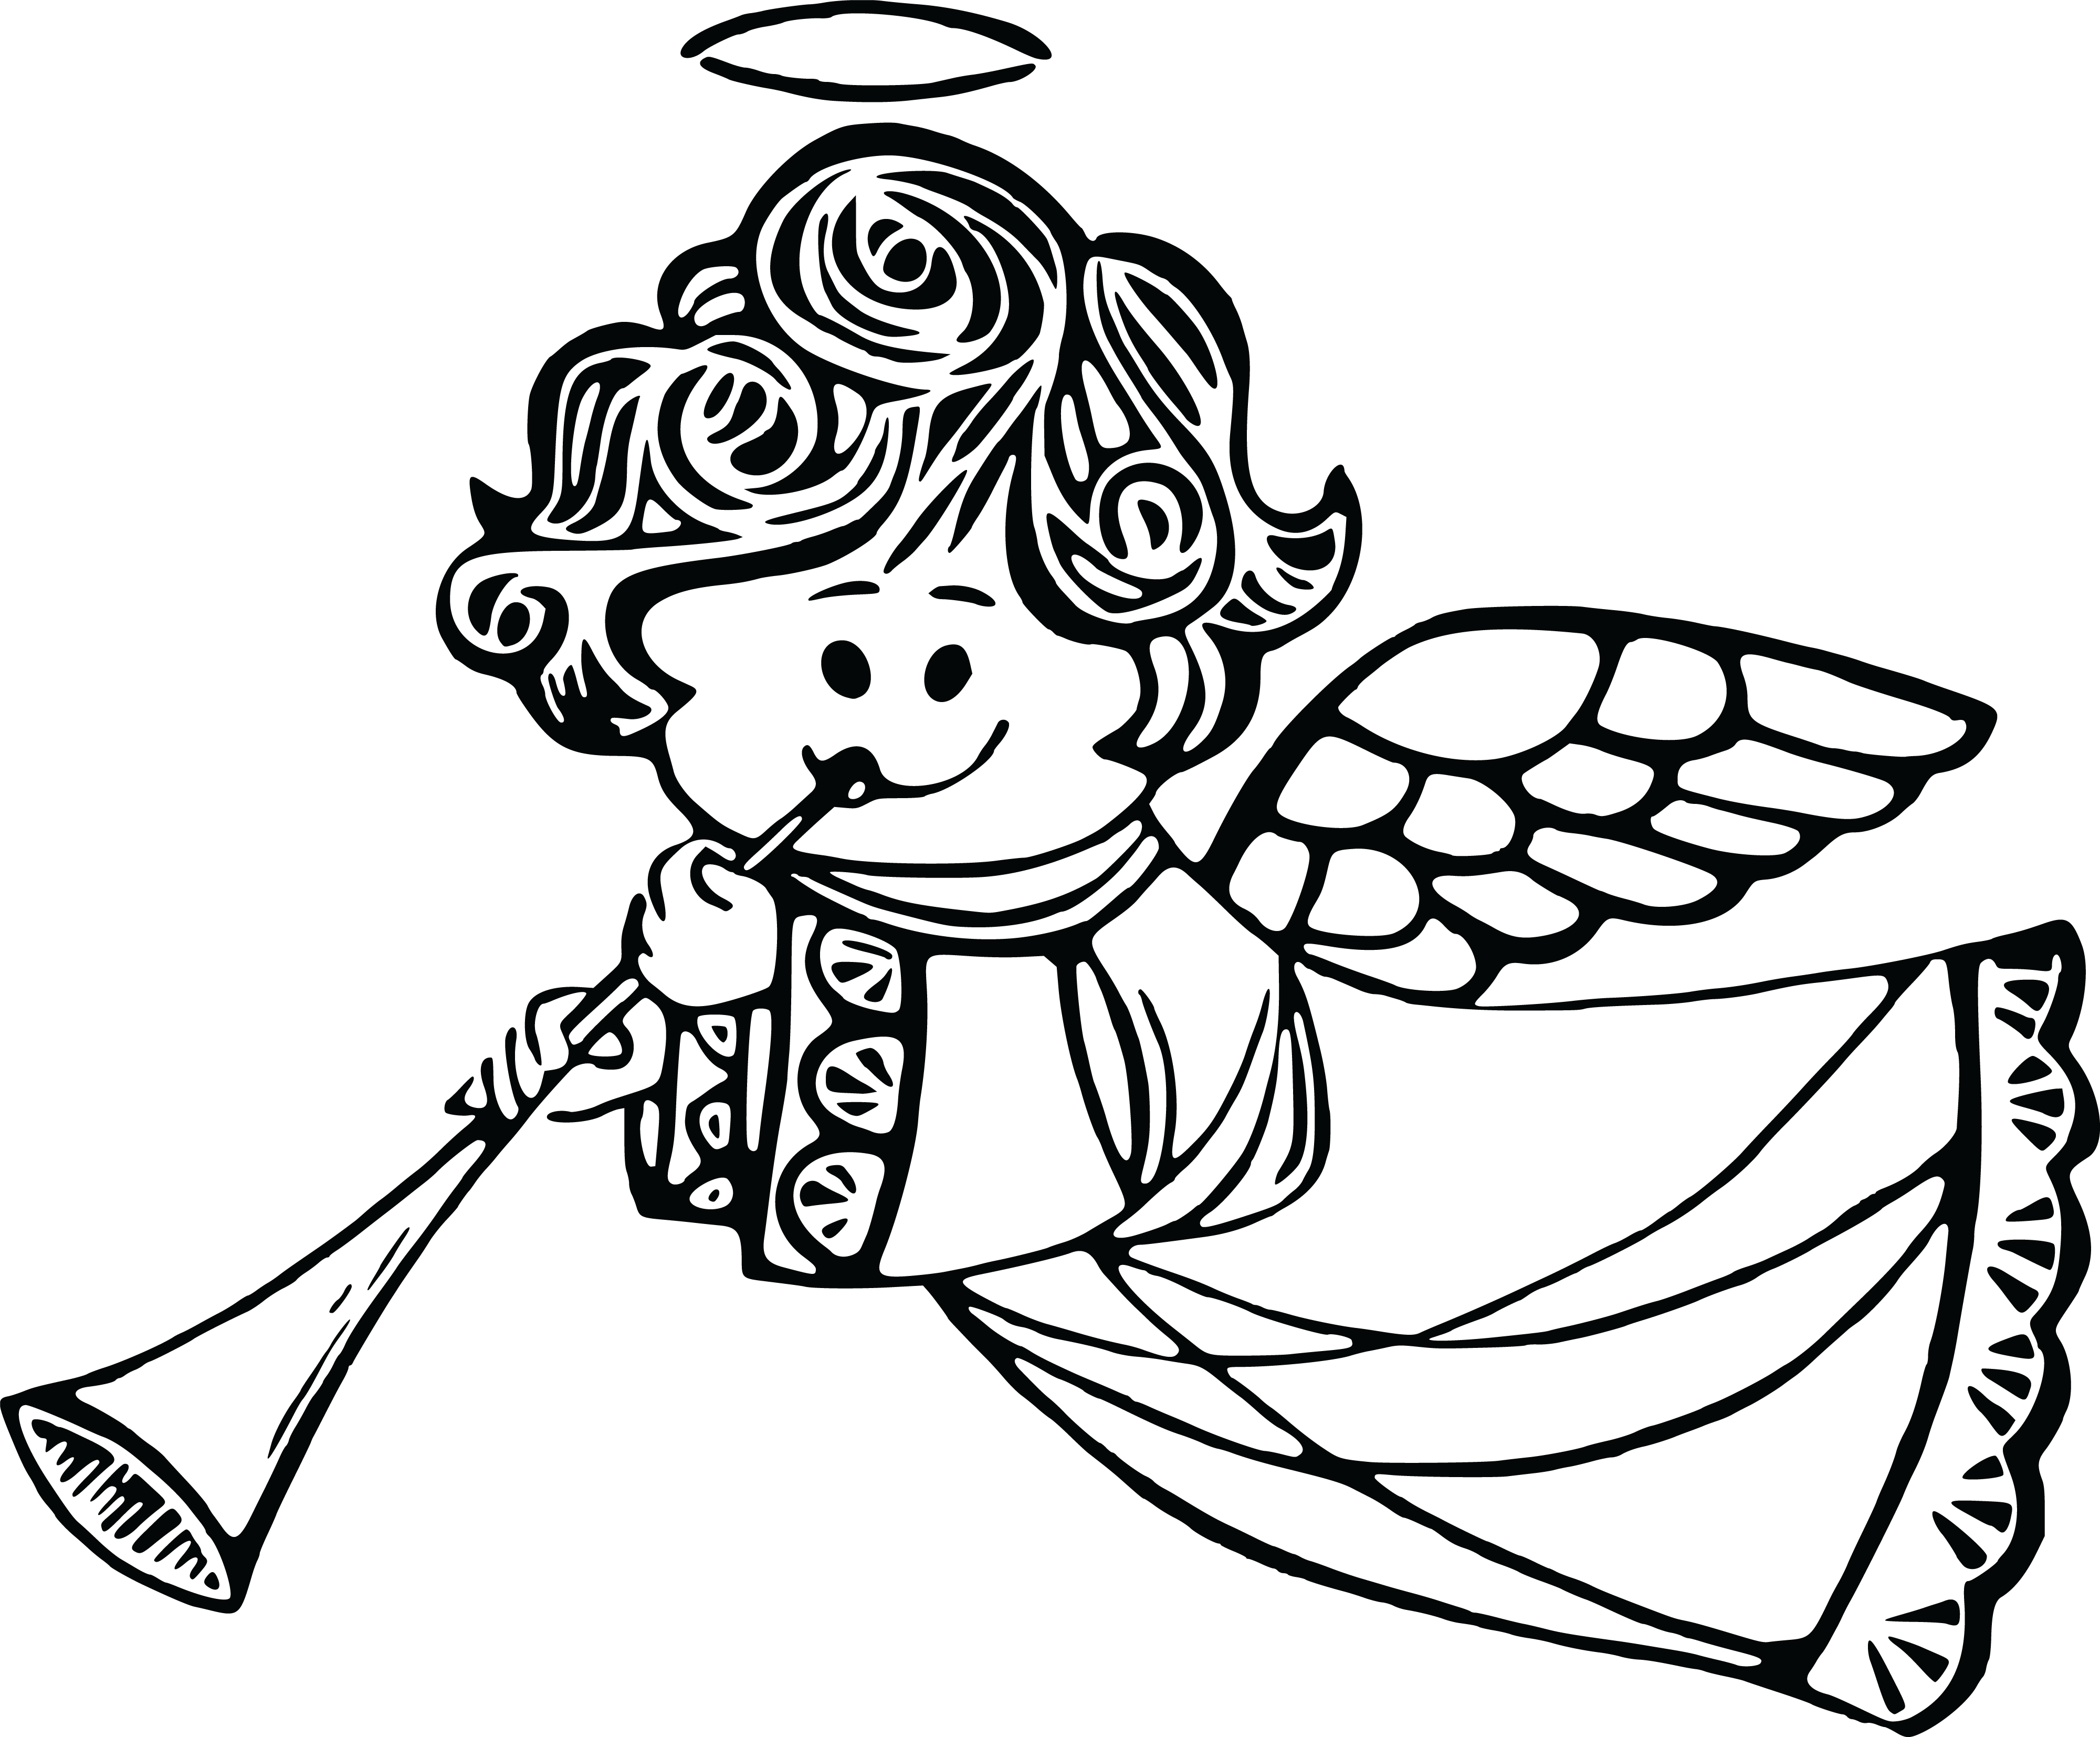 Clipart Angel Black And White Clipart Angel Black And White Transparent Free For Download On Webstockreview 2020